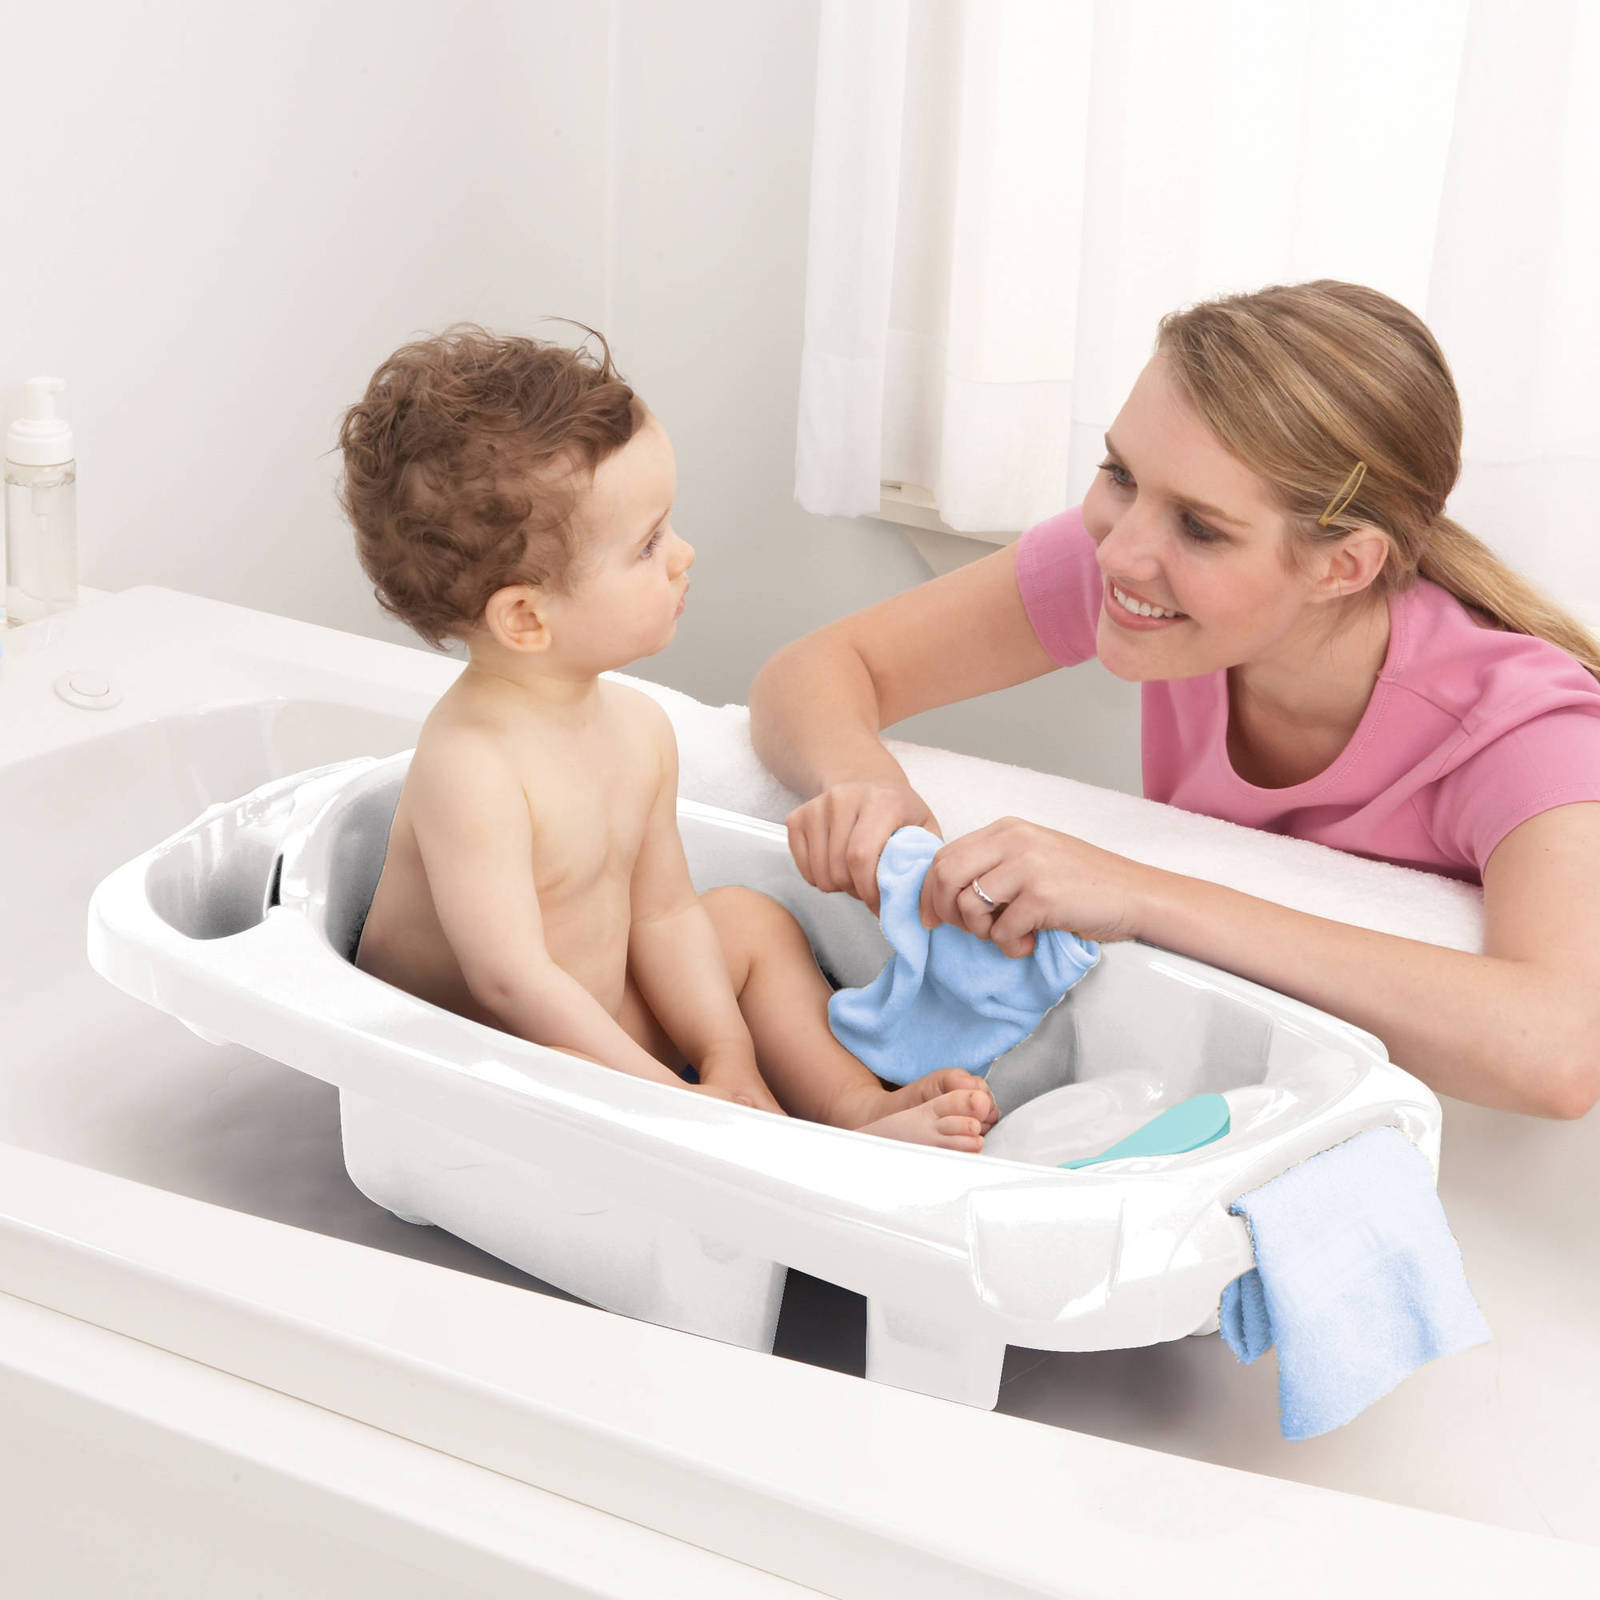 infant bathtub 28 images tummy tub s pvc free and bpa free baby bathtub is safe for. Black Bedroom Furniture Sets. Home Design Ideas